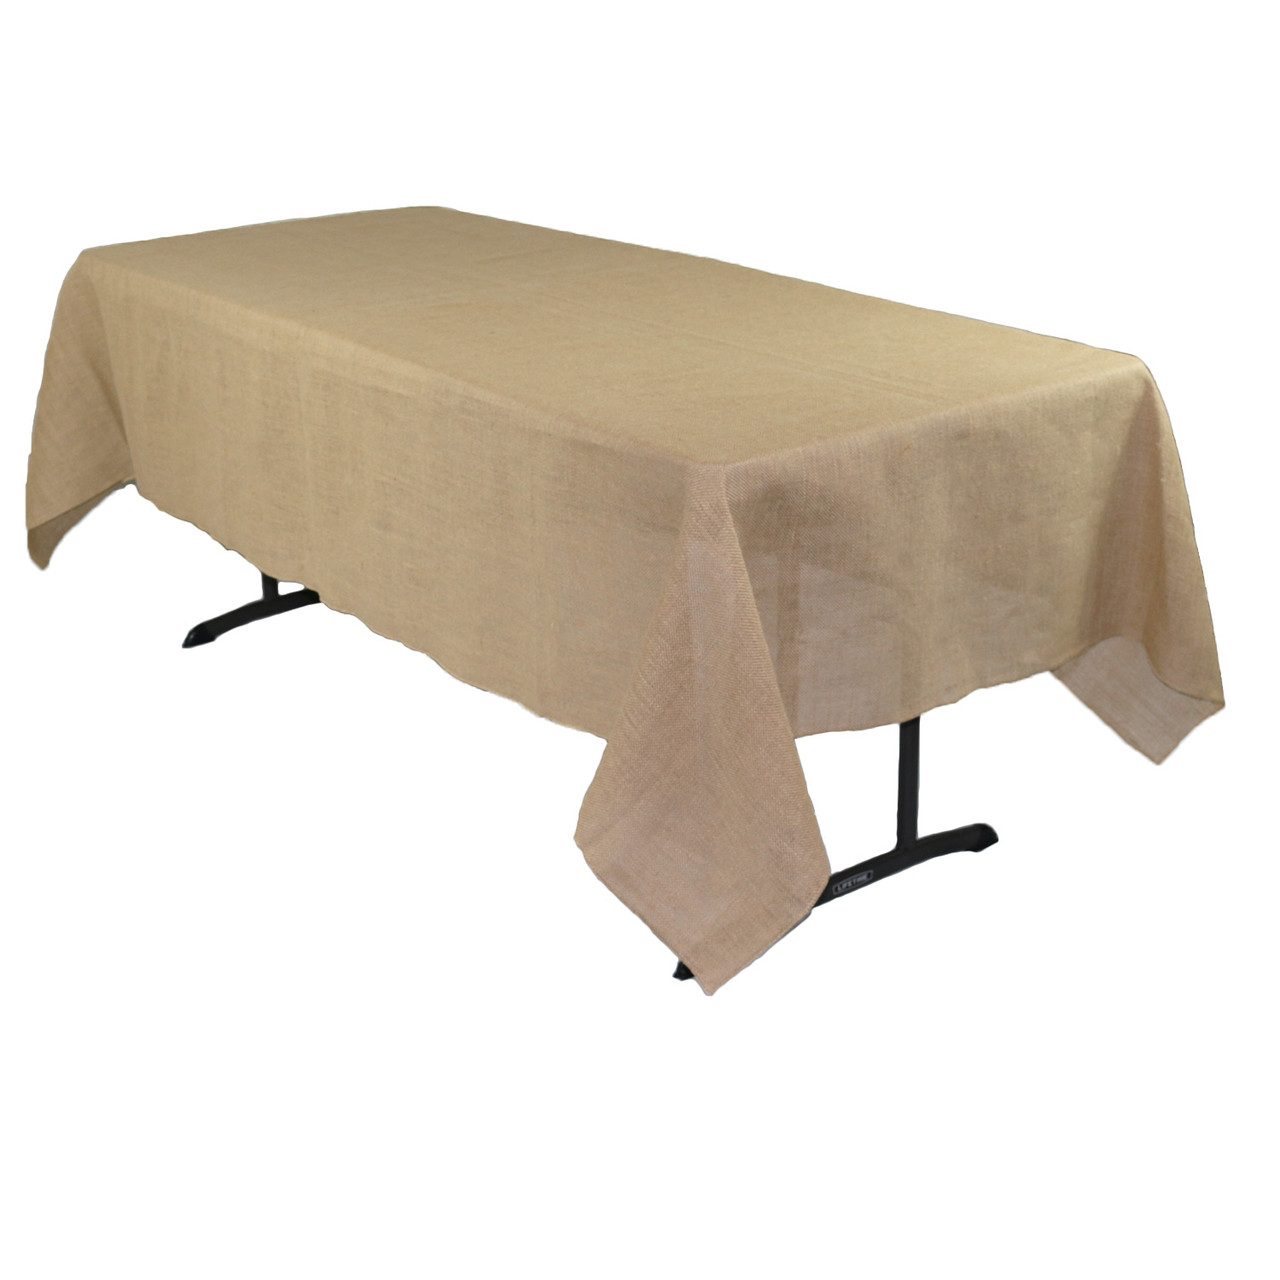 60 X 102 Inch Rectangular Burlap Tablecloth Your Chair Covers Inc